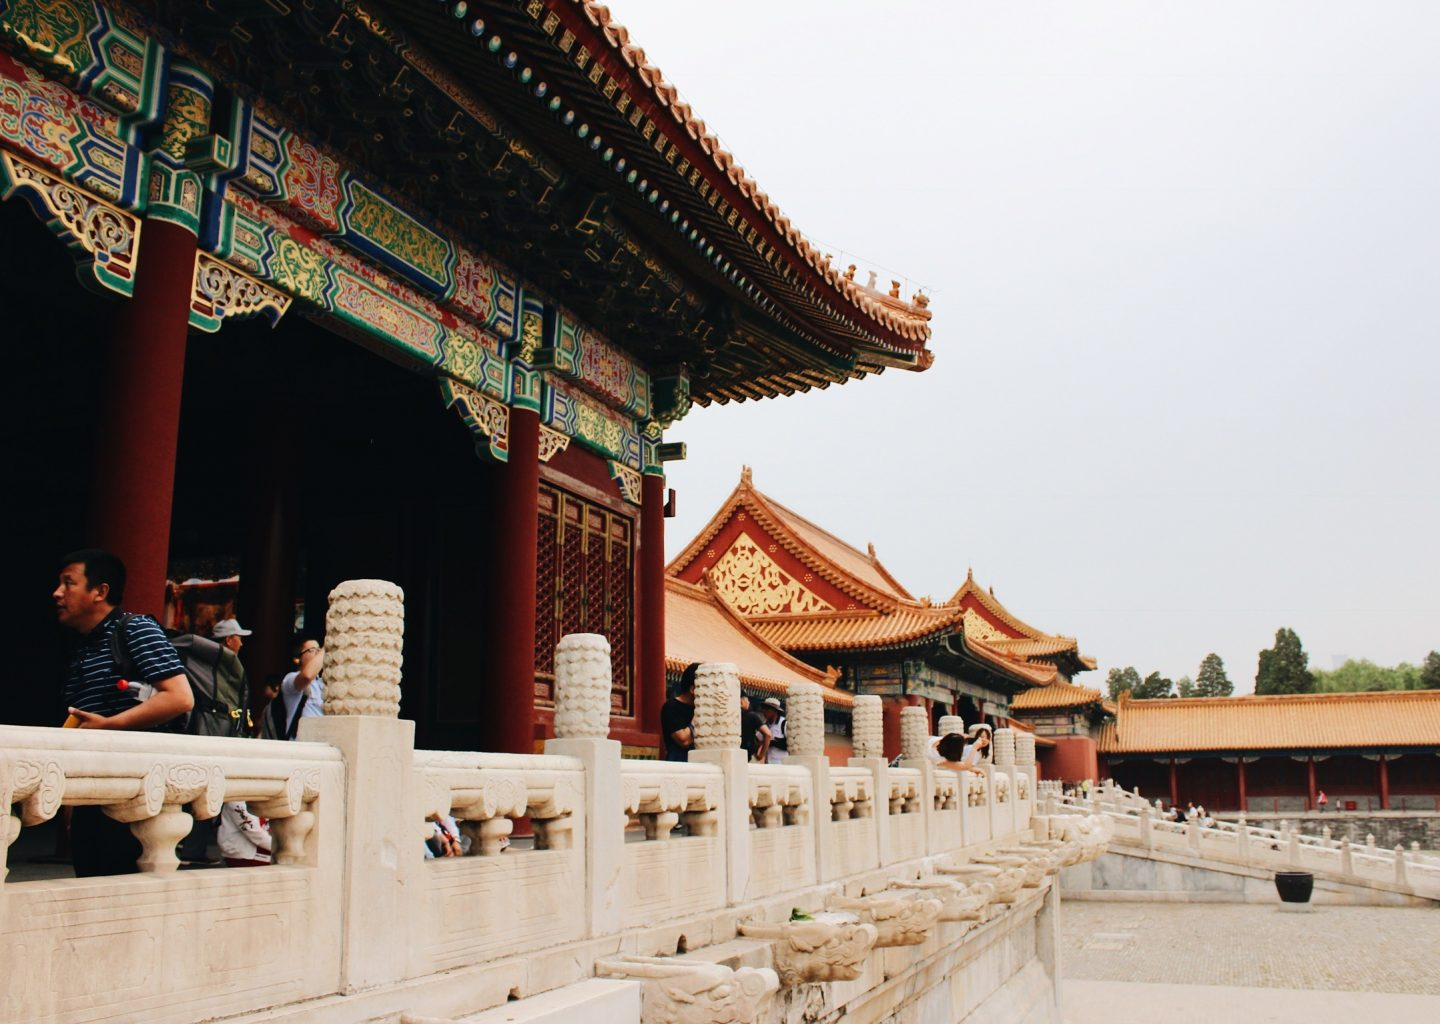 The Forbidden City in Beijing, China!